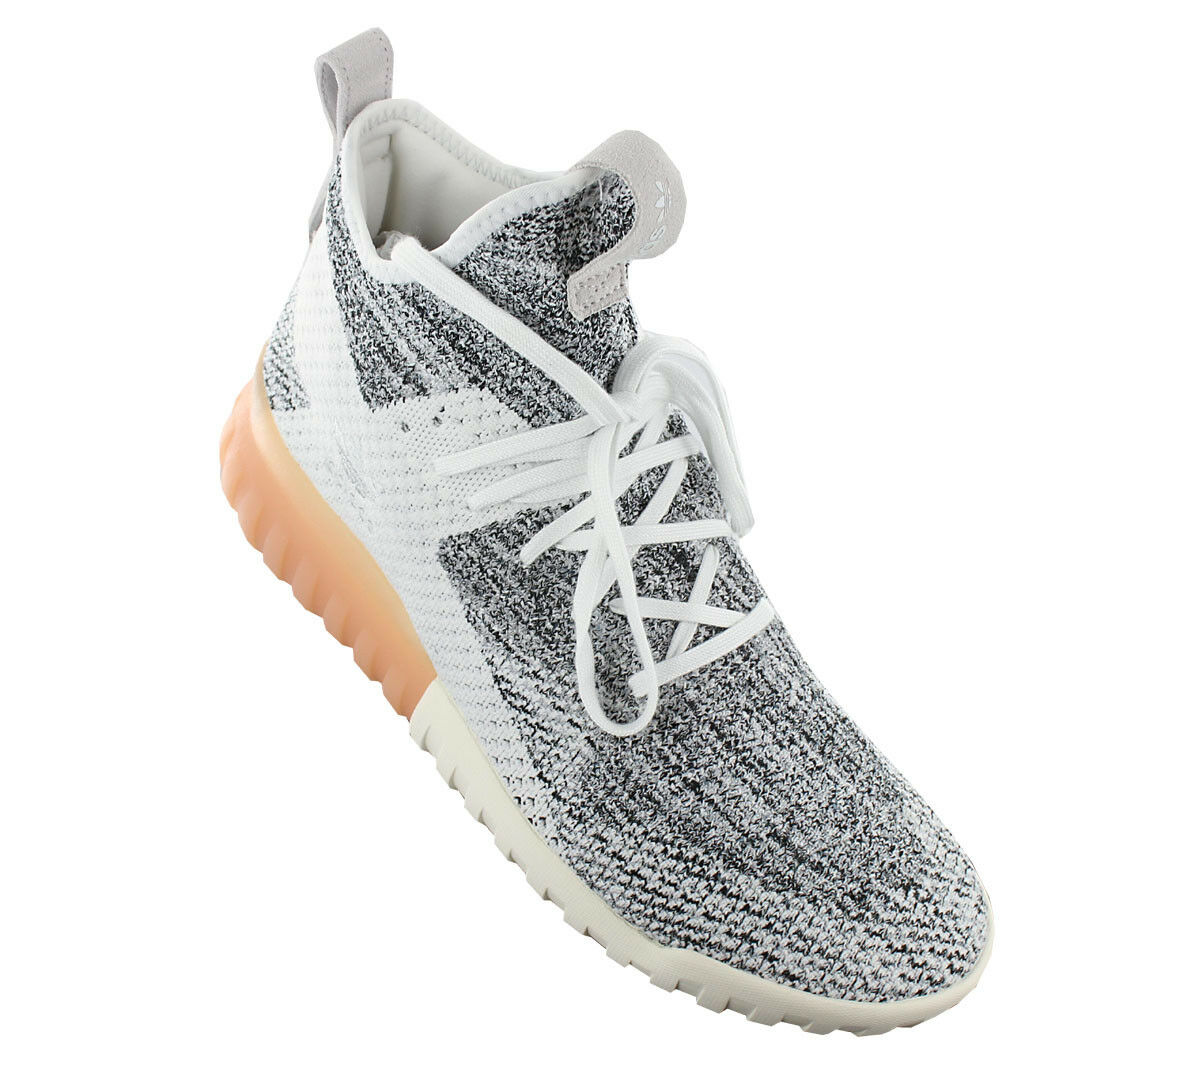 NEW adidas Tubular X PK Primeknit BY3146 Men''s shoes Trainers Sneakers SALE